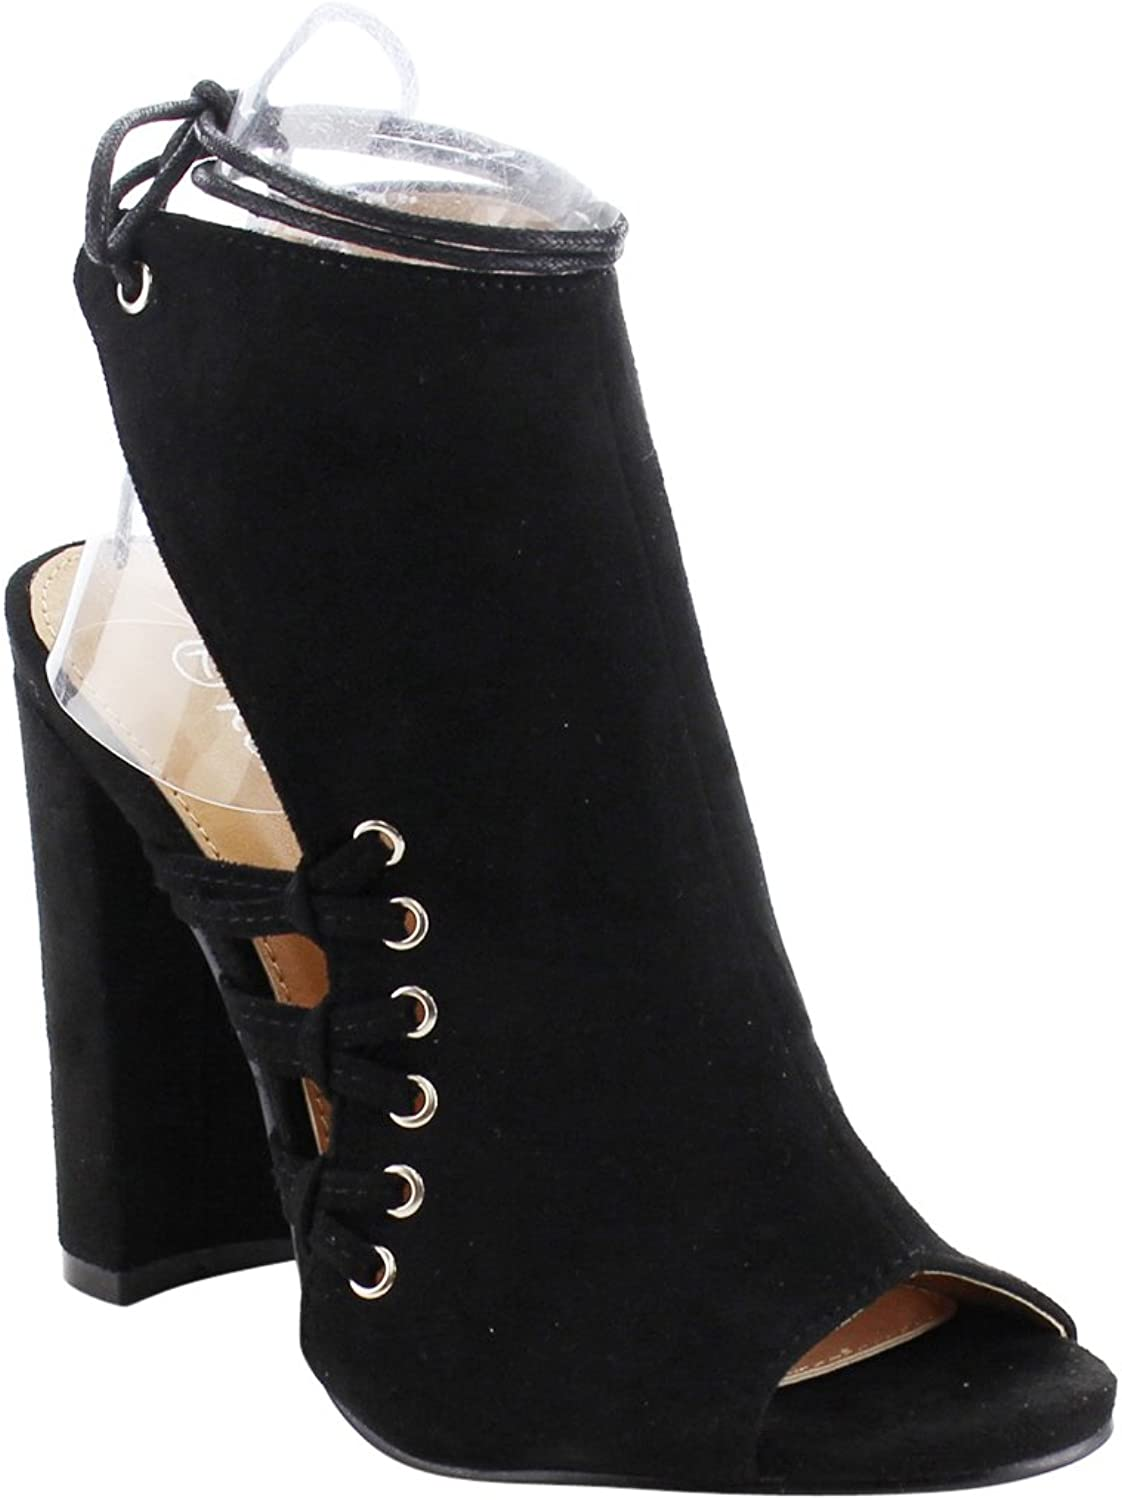 Reneeze AG30 Women's Ankle Wrap Backless Lace up Dress Boots Heels